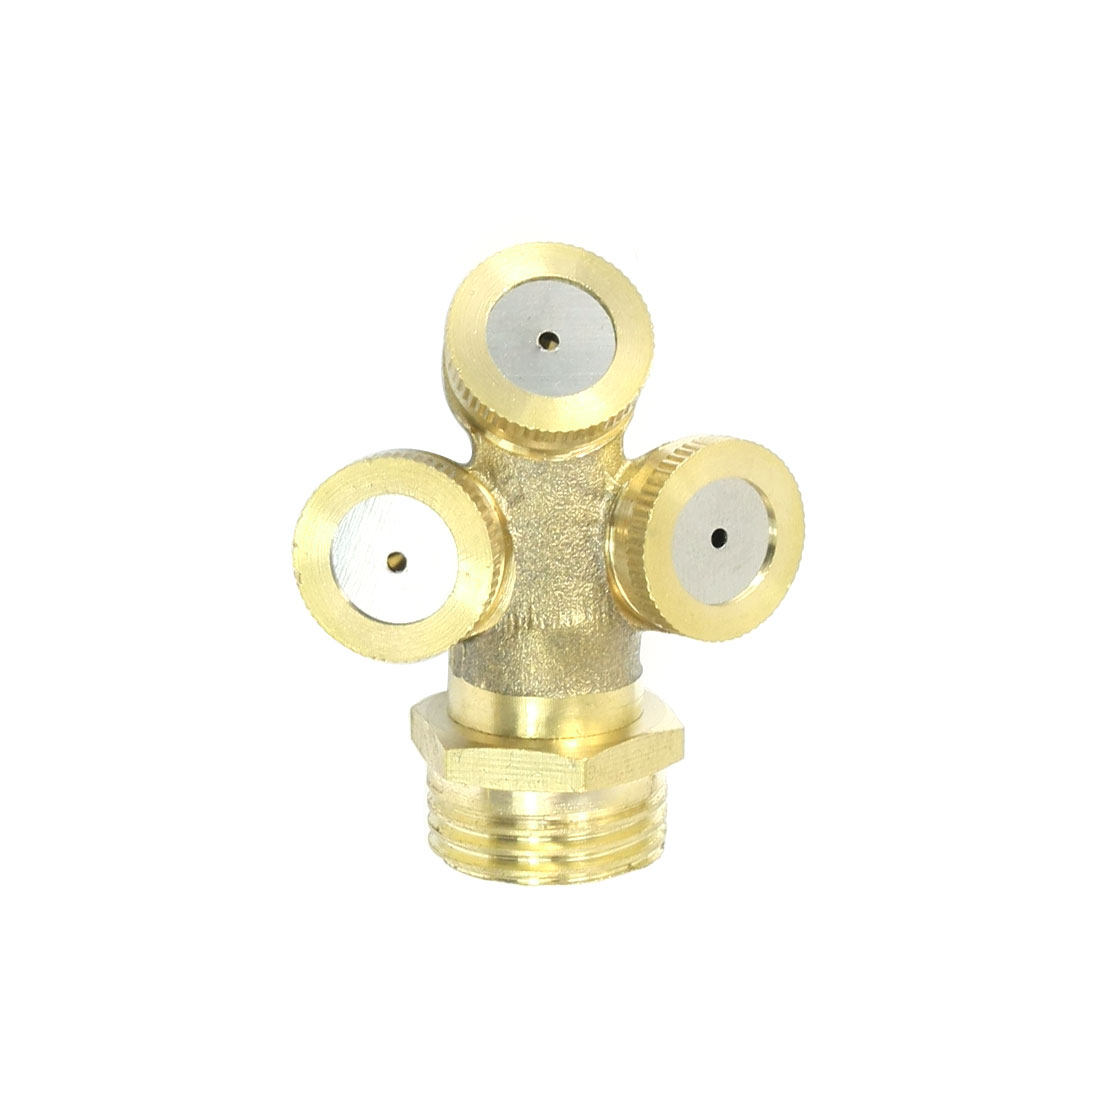 Gardening 21mm Male Thread Dia Irrigation Three Head Spray Nozzle Brass Tone